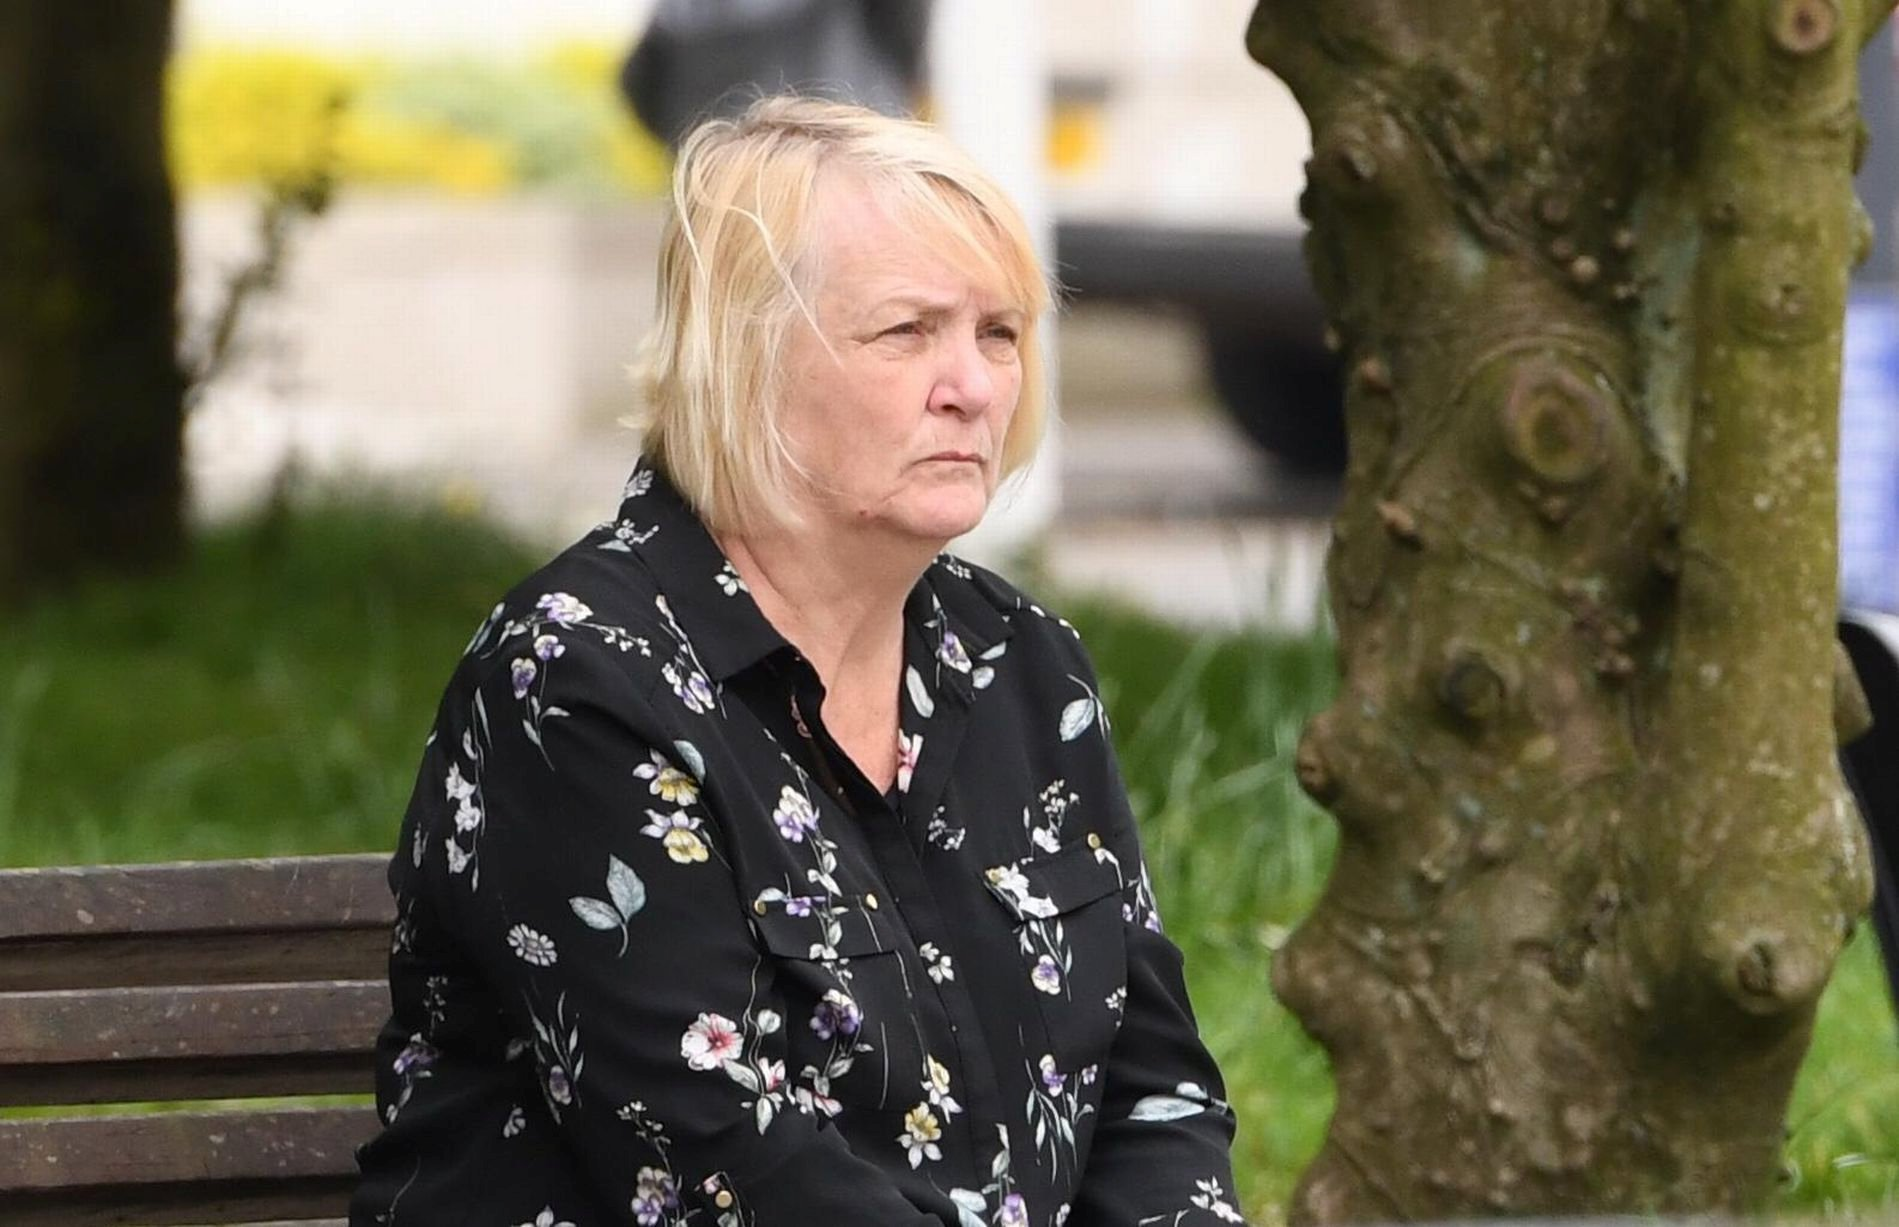 Carer Susan Stuart denied the allegations (Picture: PlymouthLive/SWNS)